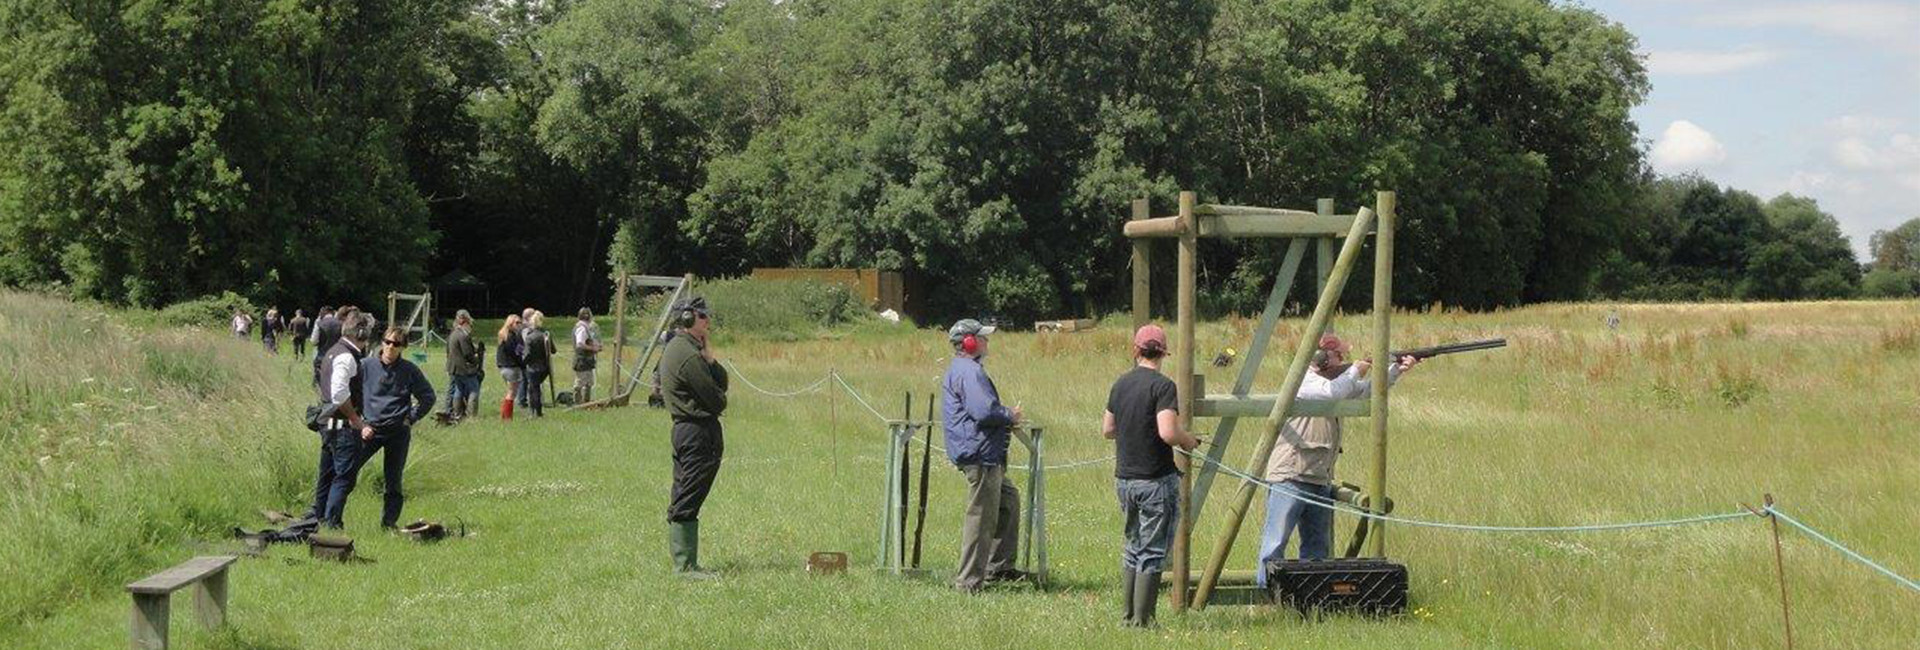 Clay Target Shooting Outdoors